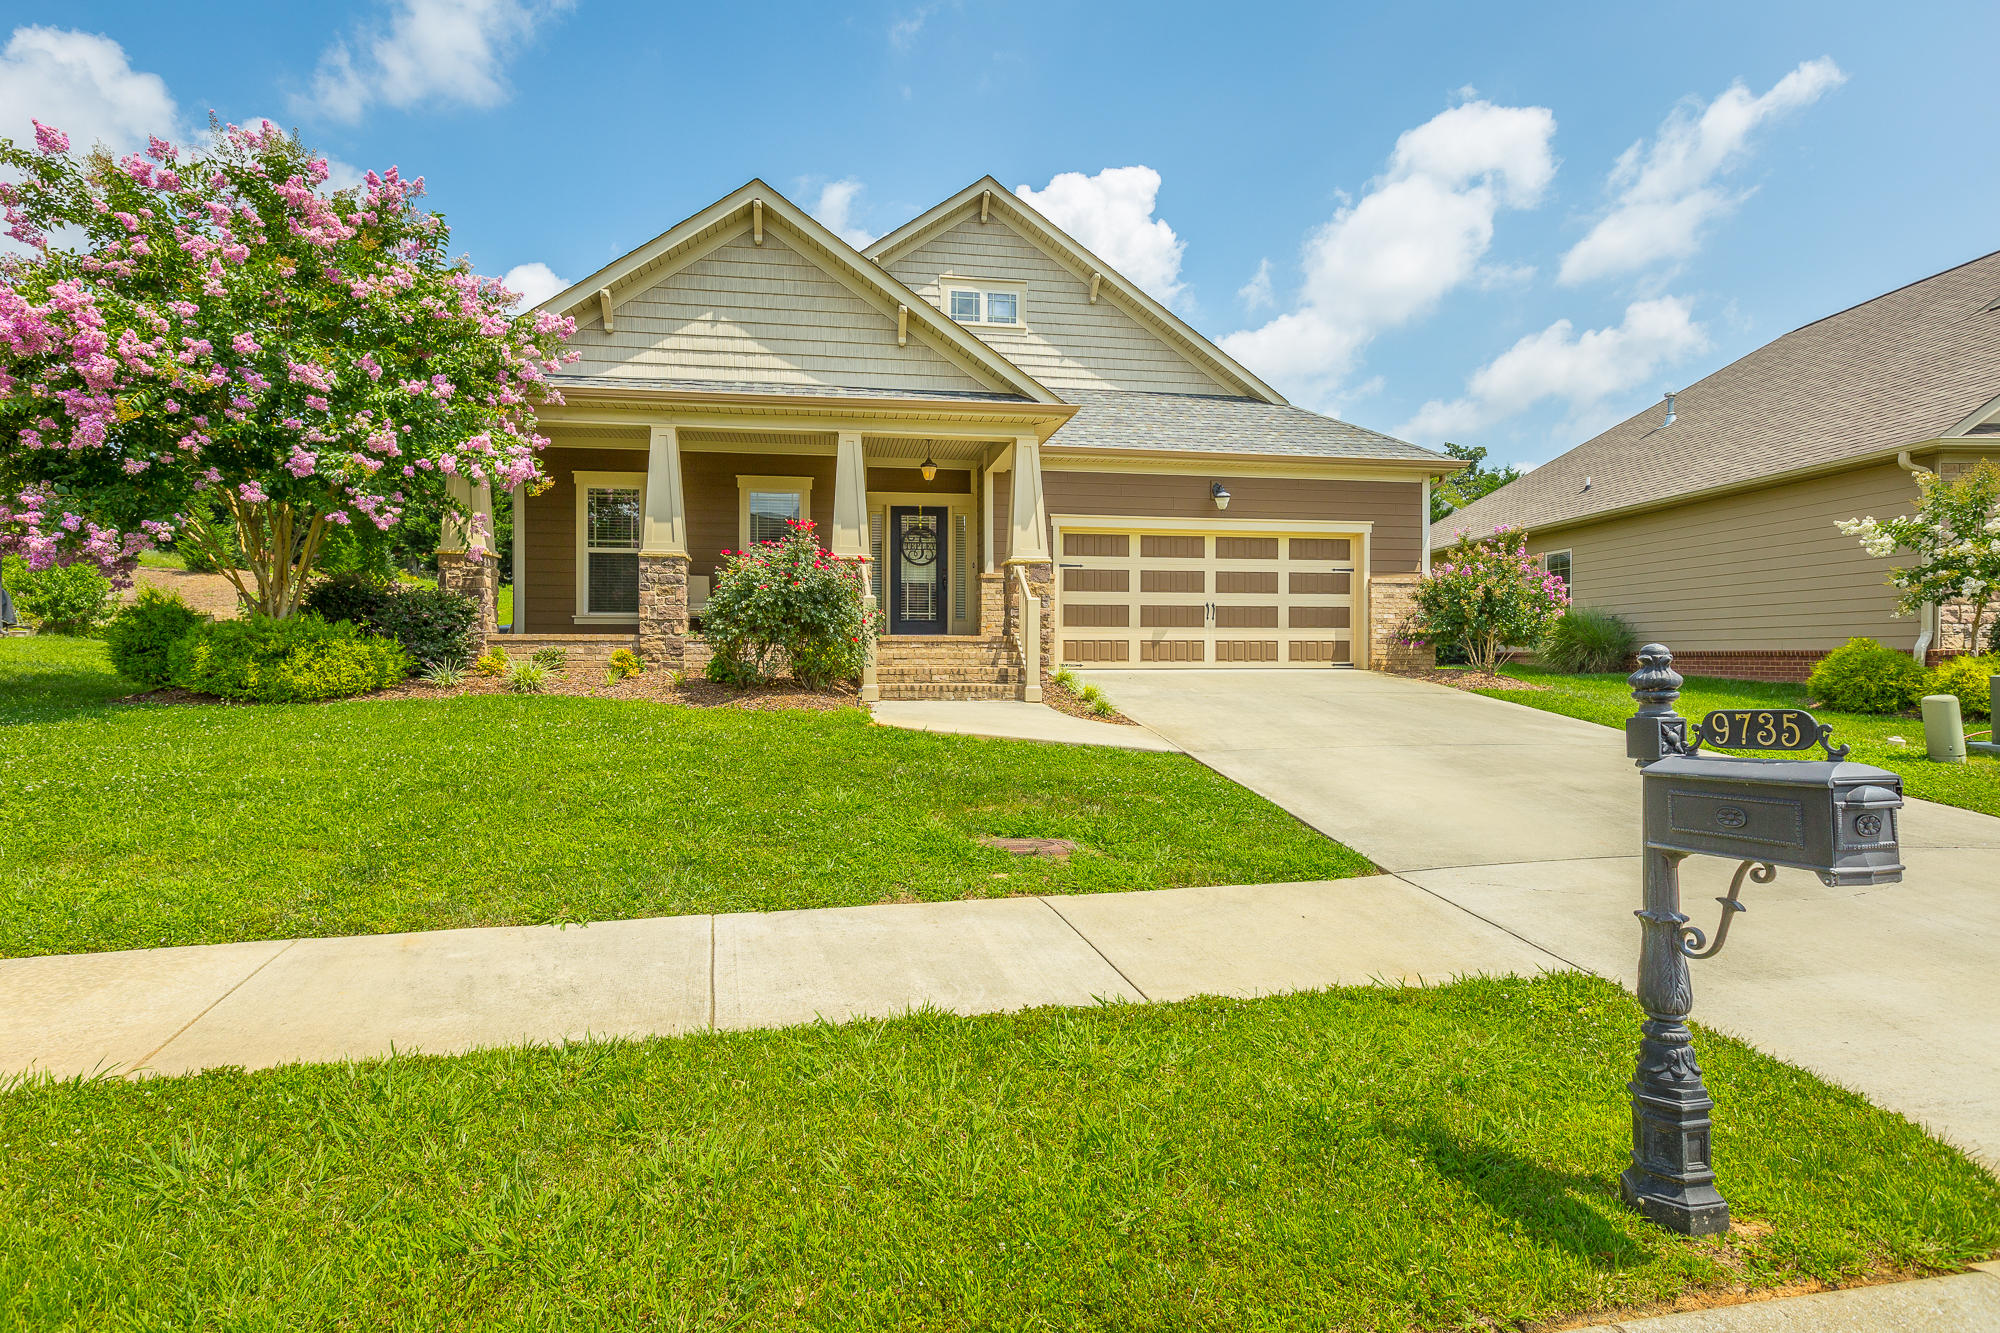 9735 Rookwood Circle Chattanooga #homeforsaleinchattanooga, #ChattanoogaHomeForSale, #ThePaulaMcDanielGroup, #Chattanoogarealestateforsale, #Chattanoogarealestateforsale, #allbrickhomeforsale#, ThePaulaMcDanielGroup, #homeforsalewith - The Paula McDaniel Group - Real Estate Partners Chattanooga LLC #homeforsaleinchattanooga, #ChattanoogaHomeForSale, #ThePaulaMcDanielGroup, #Chattanoogarealestateforsale, #Chattanoogarealestateforsale, #allbrickhomeforsale#, ThePaulaMcDanielGroup, #homeforsalewith